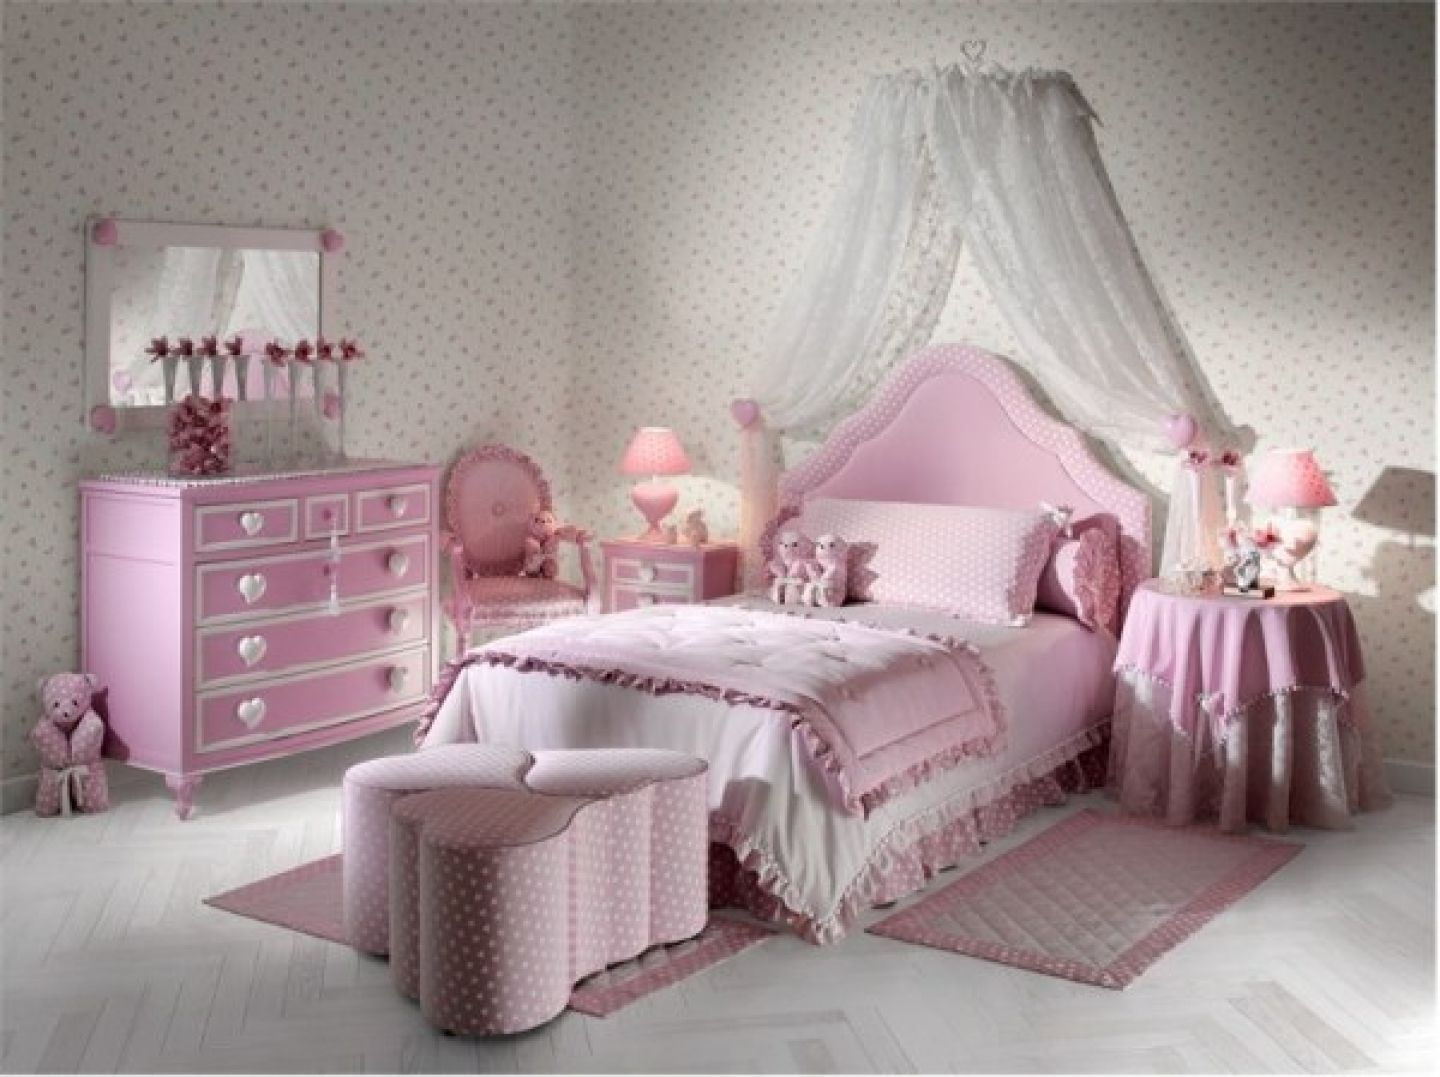 Attractive Bedroom,Beautiful Girls Bedroom Decorating Ideas Room Designs For Girls  With Elegant Princess Pink Queen Size Bed Also Small Pink Night Stan.